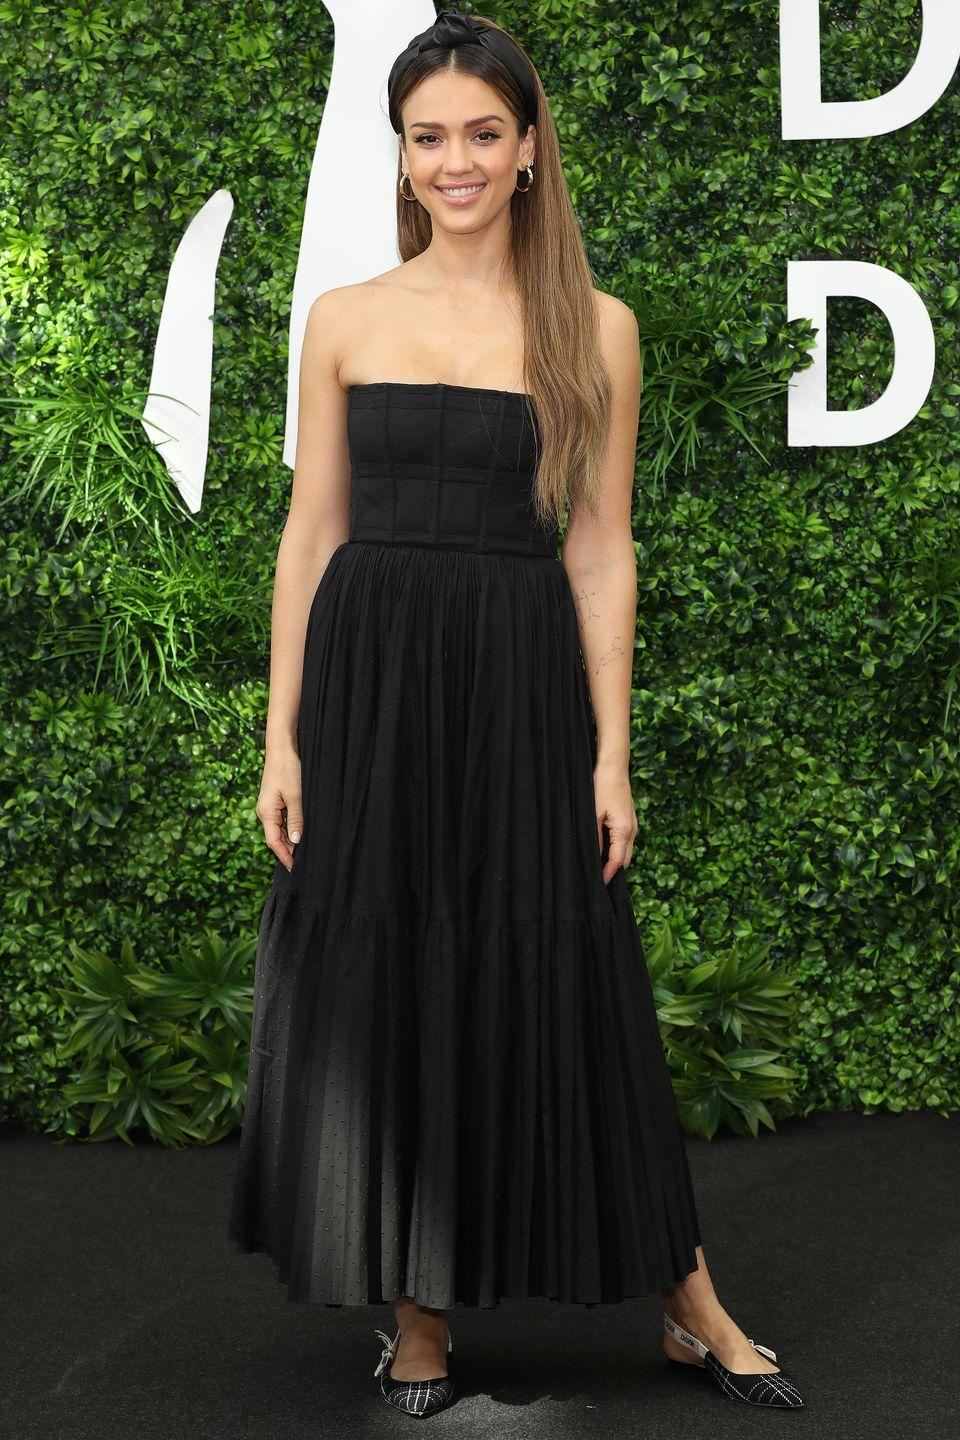 """<p>Who: Jessica Alba </p><p>When: June 15, 2019</p><p>Wearing: Dior</p><p>Why: You don't have to wear heels with a gown, as proven by Jessica Alba. Worn to the Monte-Carlo, Monaco photocall of <em>L.A.'s Finest, </em>she styled her dress down with easy flats and an on-trend <a href=""""https://www.elle.com/beauty/hair/a28121759/padded-headbands-trend/"""" rel=""""nofollow noopener"""" target=""""_blank"""" data-ylk=""""slk:headband"""" class=""""link rapid-noclick-resp"""">headband</a>. </p>"""